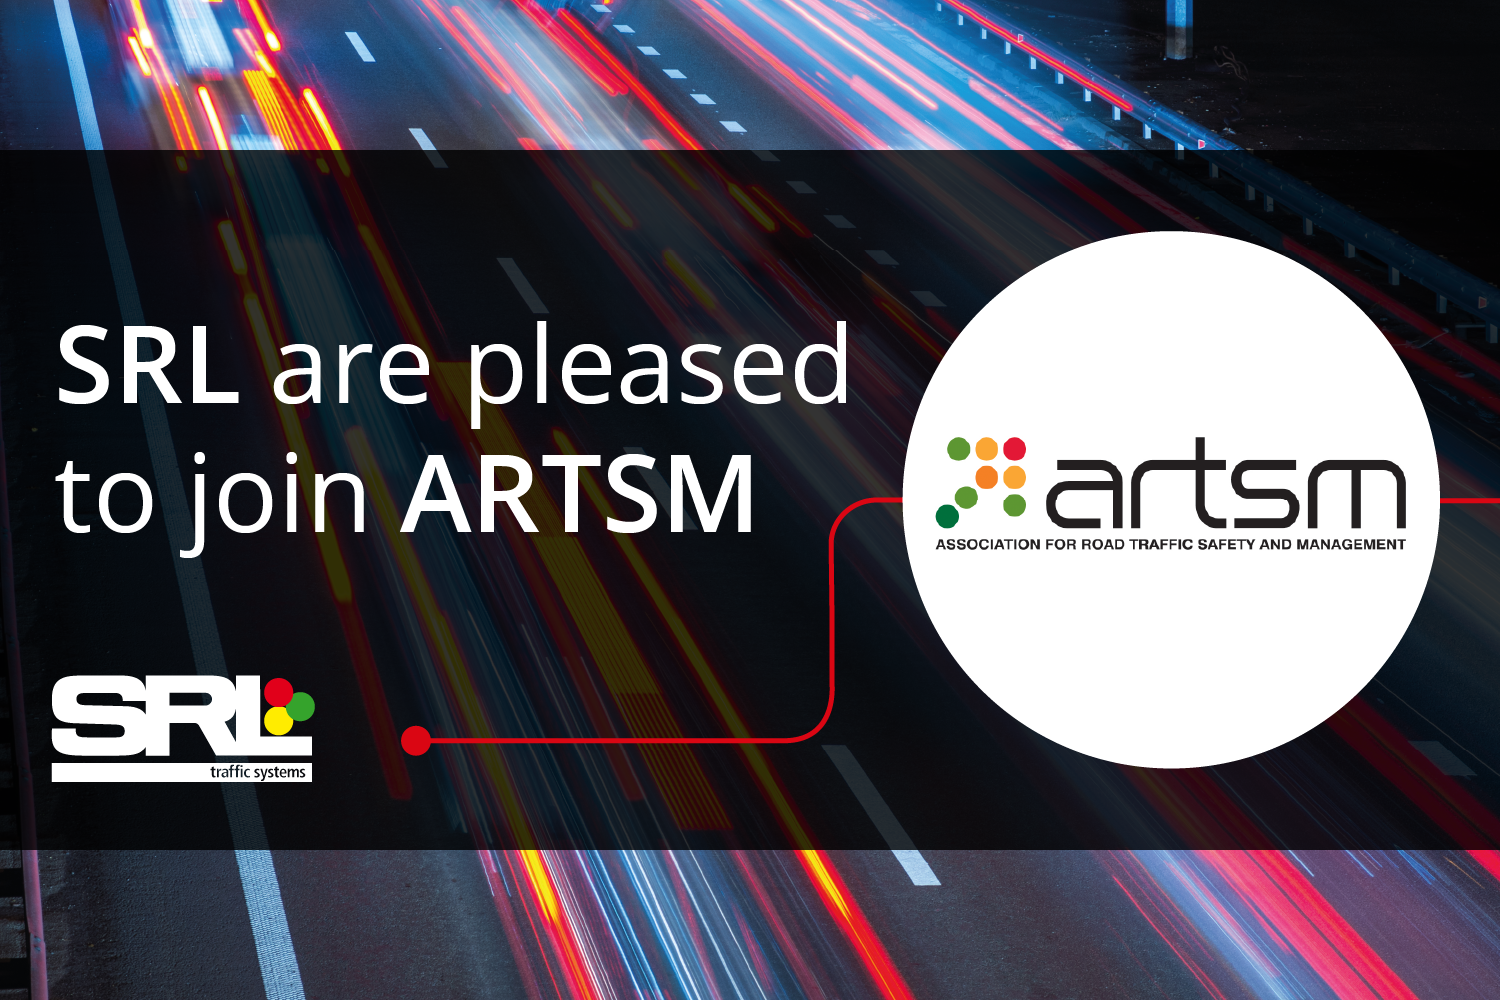 SRL Traffic Systems joins ARTSM, the trade association for road traffic safety and management